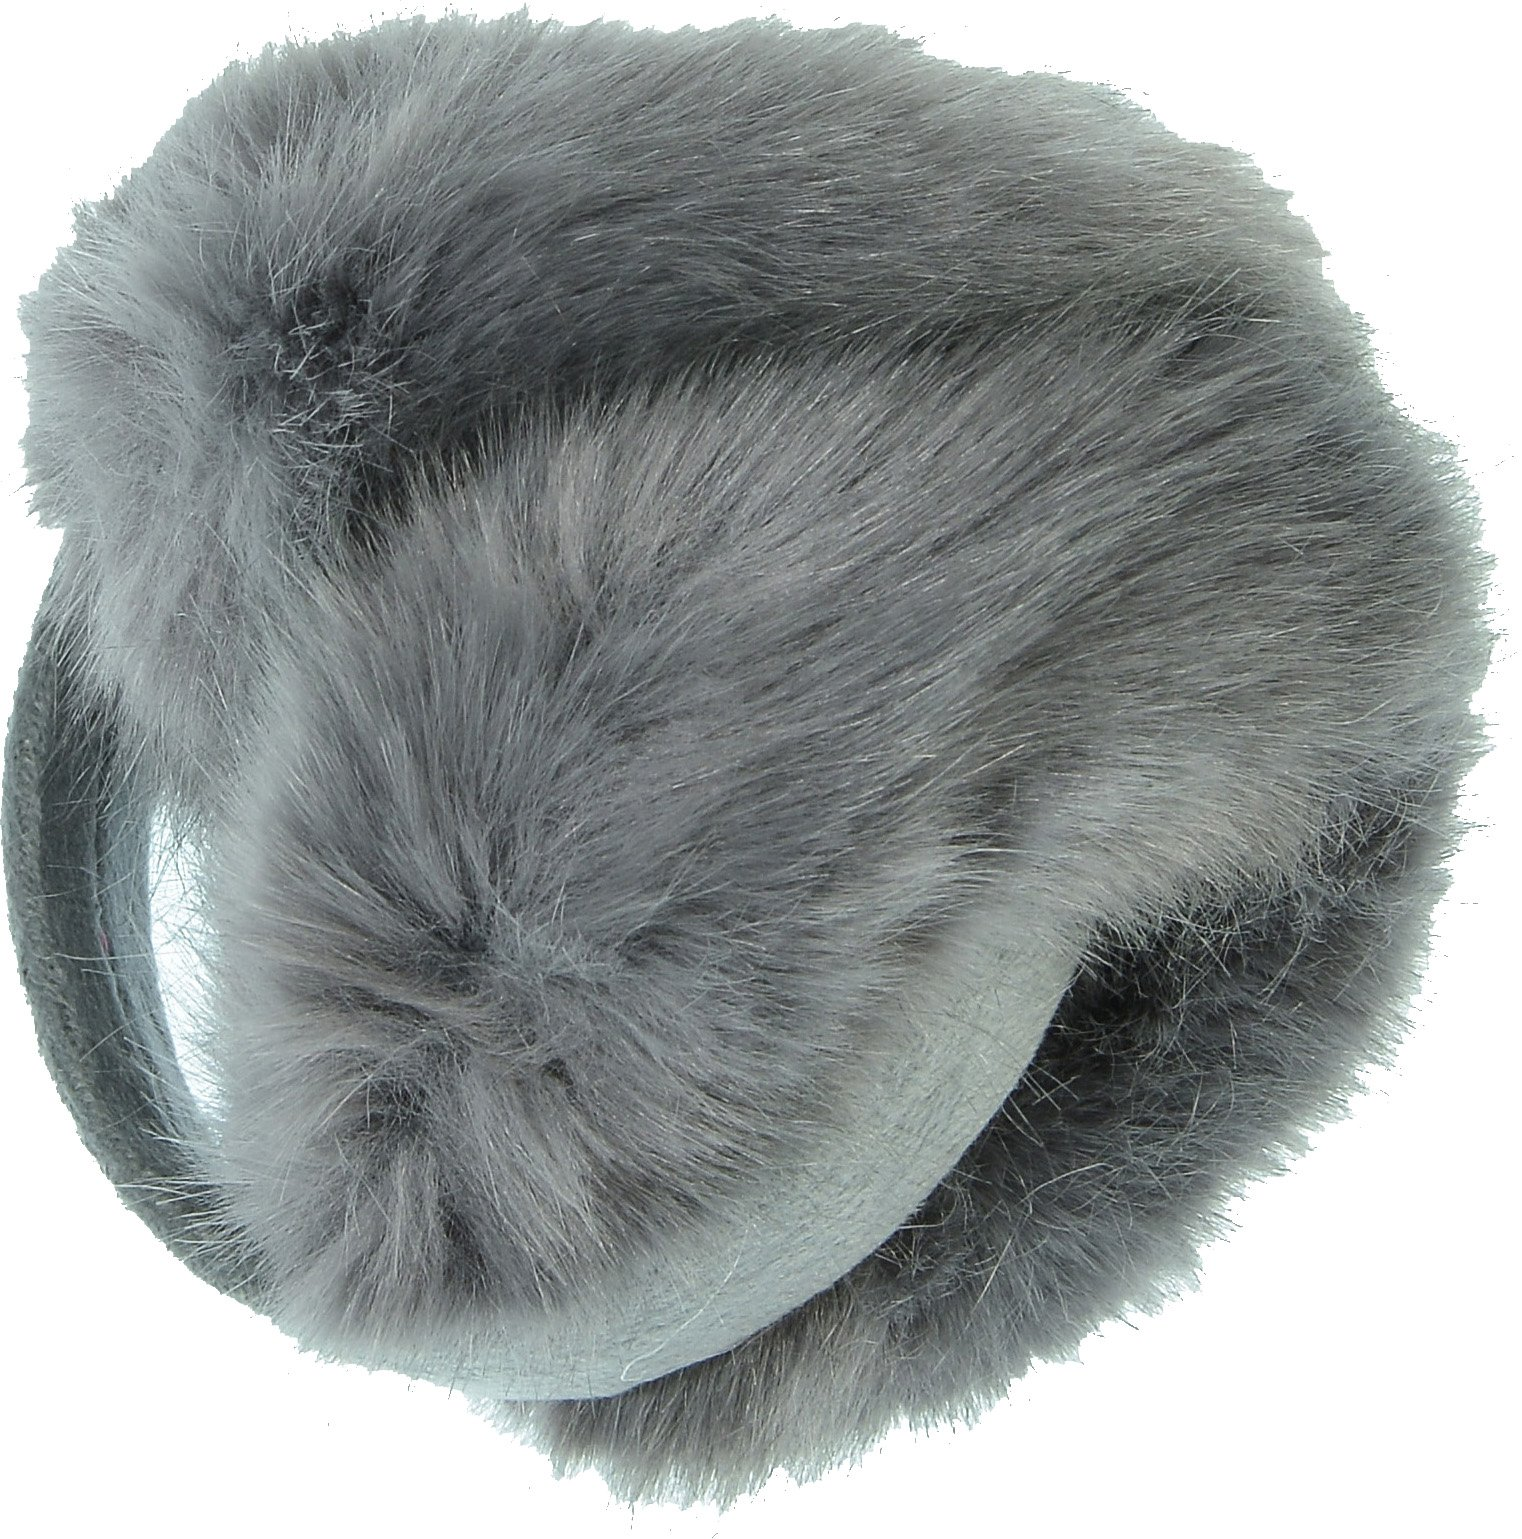 Hand By Hand Aprileo Unisex Solid Earmuff Ear Warmer Faux Fur Warmth Fuzzy [Gray.](One Size)